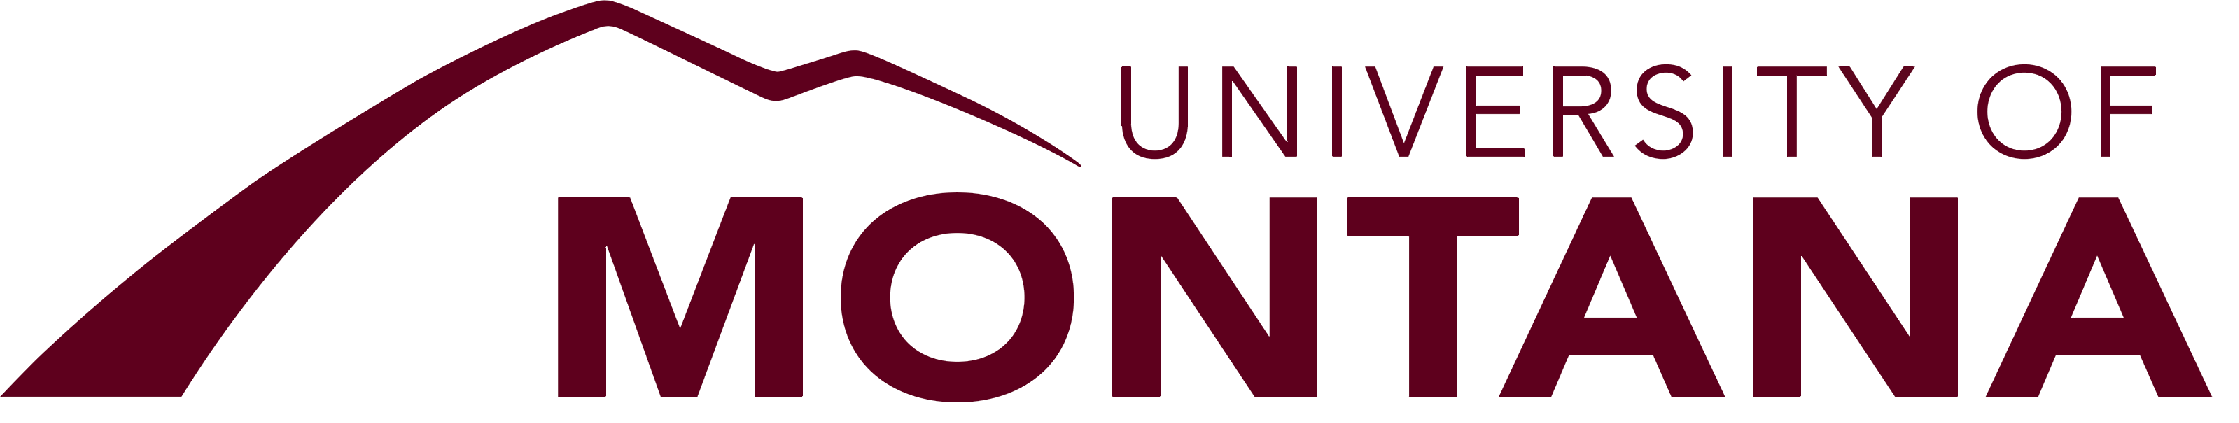 File:University of Montana logo.png - Wikimedia Commons